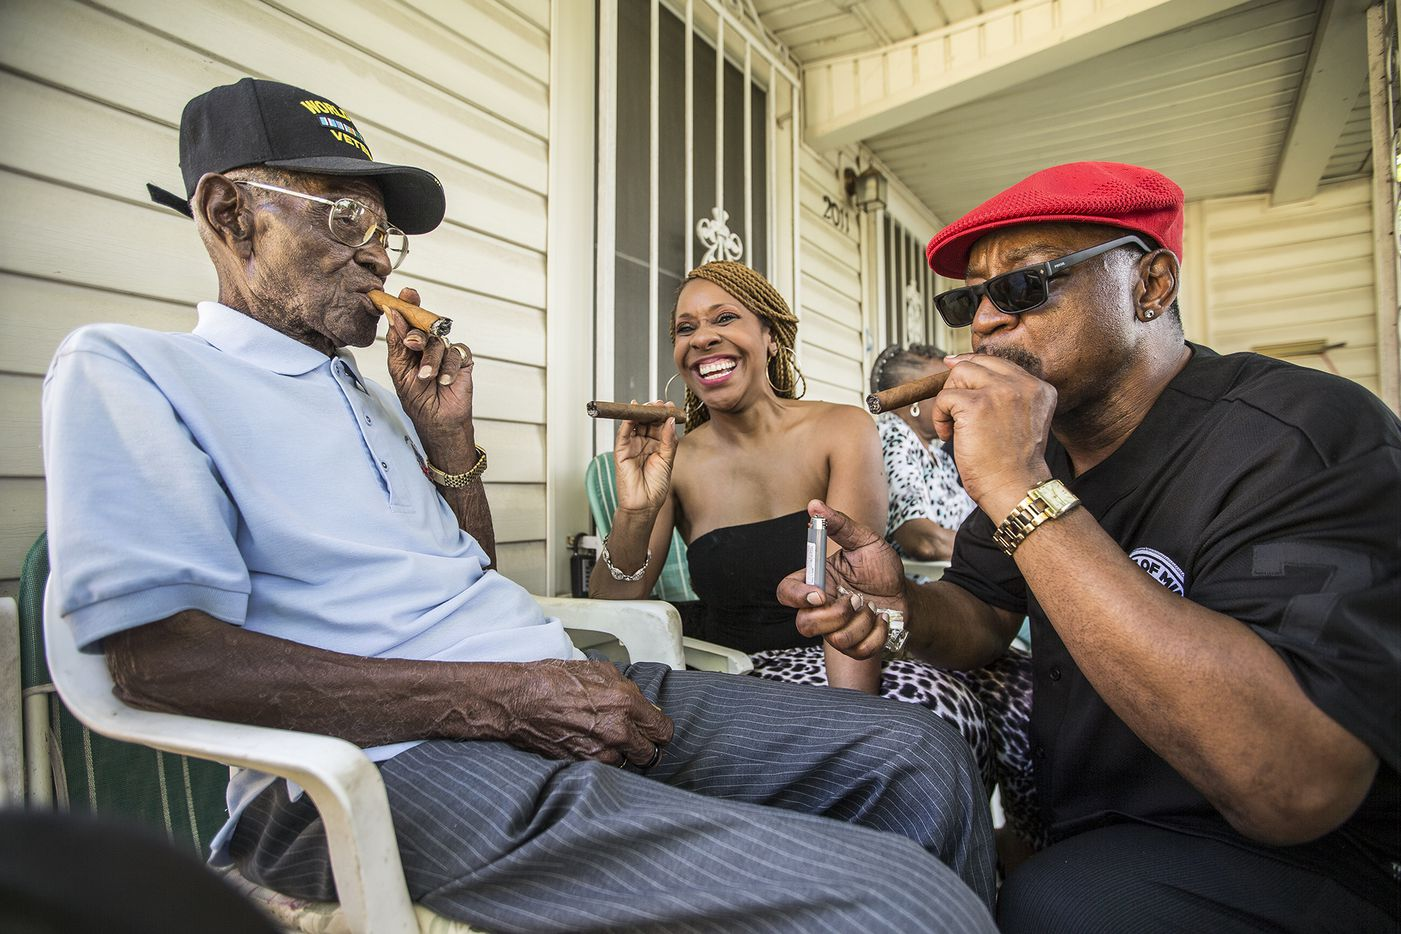 Richard Overton (left) smokes a cigar with neighborhood friends Donna Shorts (center) and Martin Wilford in May 2015, in Austin, when Overton was 109. Wilford says that he has known Overton for 37 years and he looks at Mr. Overton as if he were his biological father.